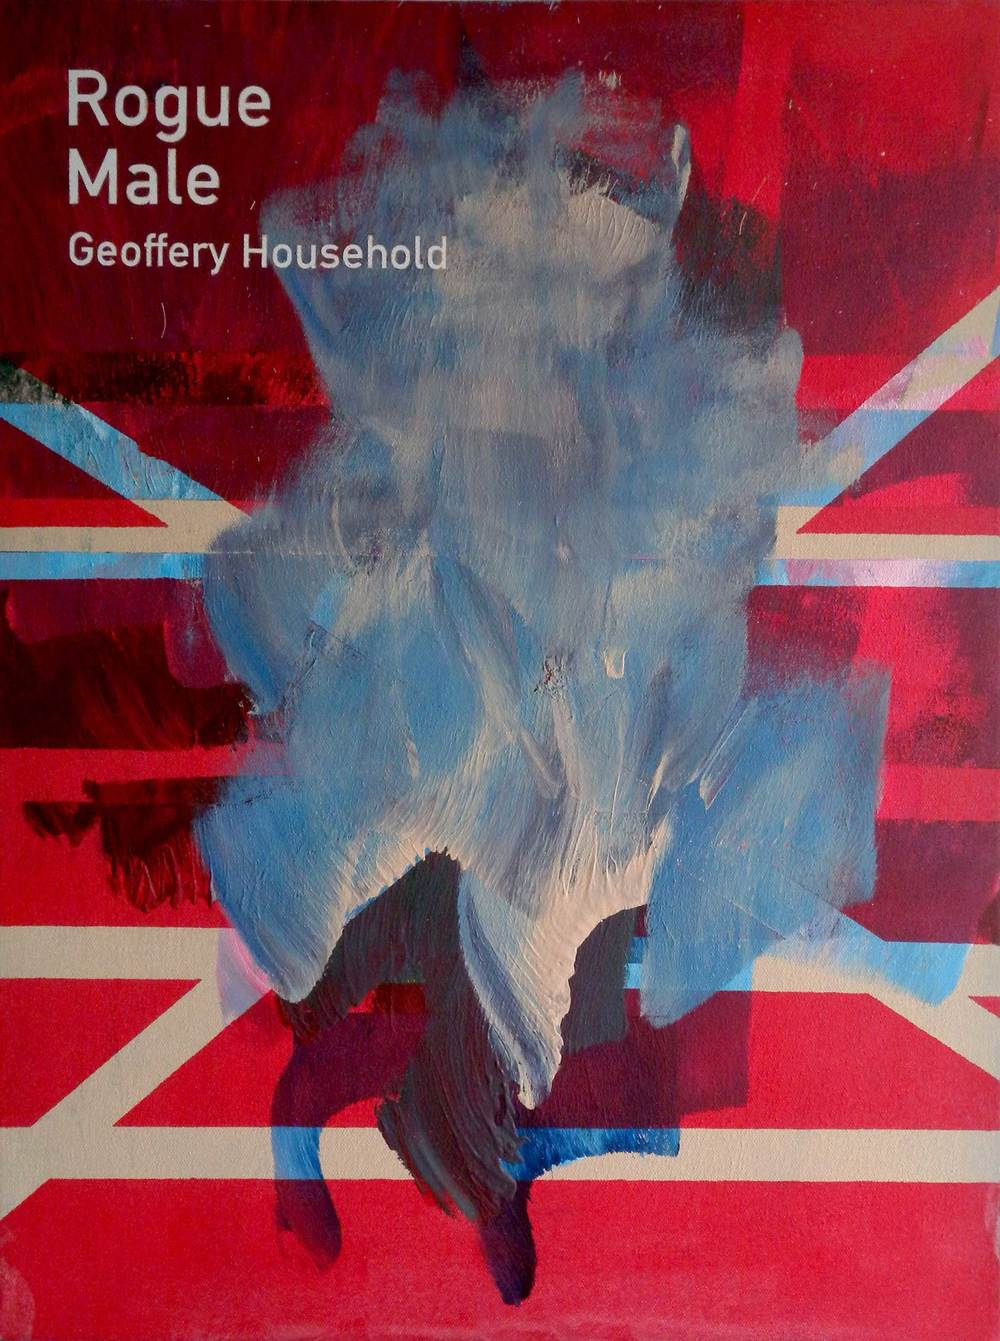 Heman CHONG  Rogue Male / Geoffery Household  2014 Acrylic on canvas 61 x 46 x 3.5 cm